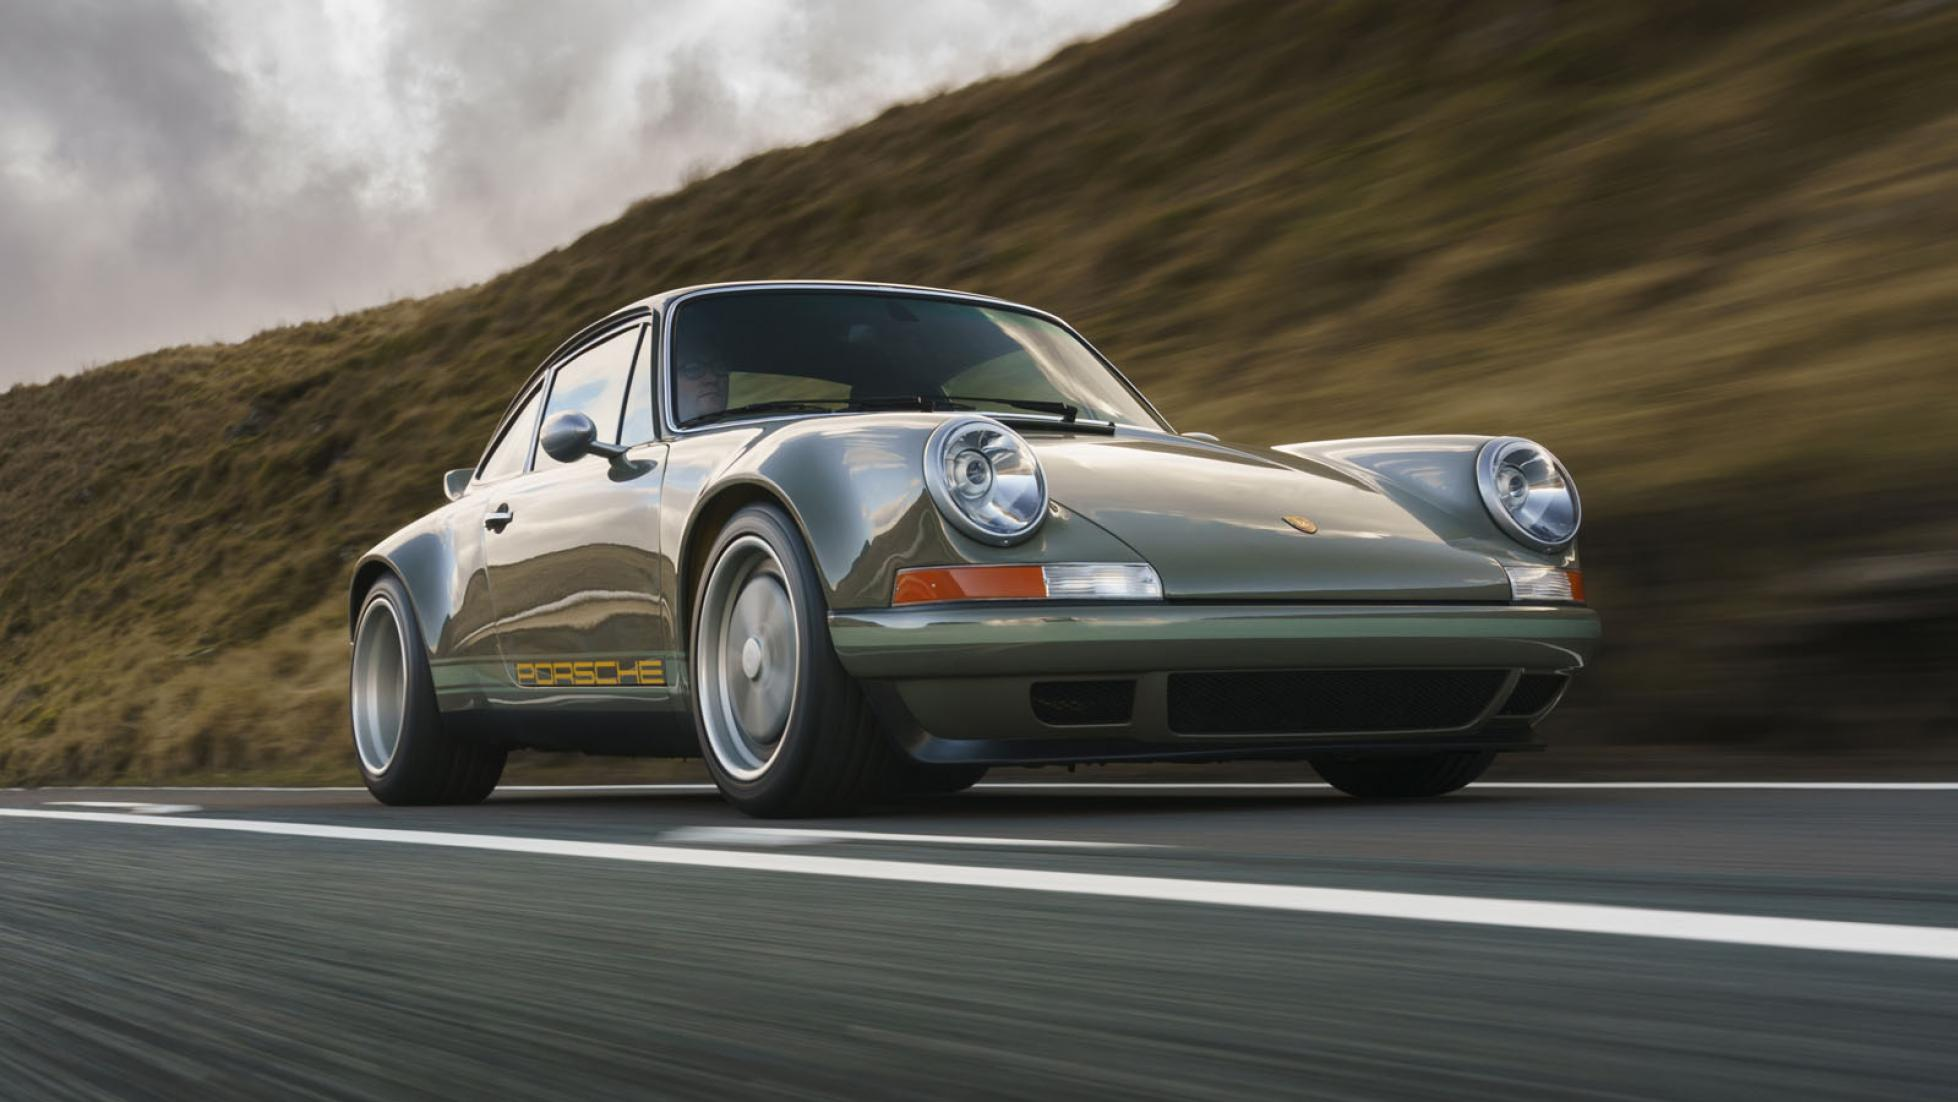 UK-based car tuner and restorer Theon Design has finished working on a one-off Porsche 911 for a client from Hong Kong. The overall level of execution makes you wonder whether the renowned Singer Vehicle Design just landed with a serious rival.